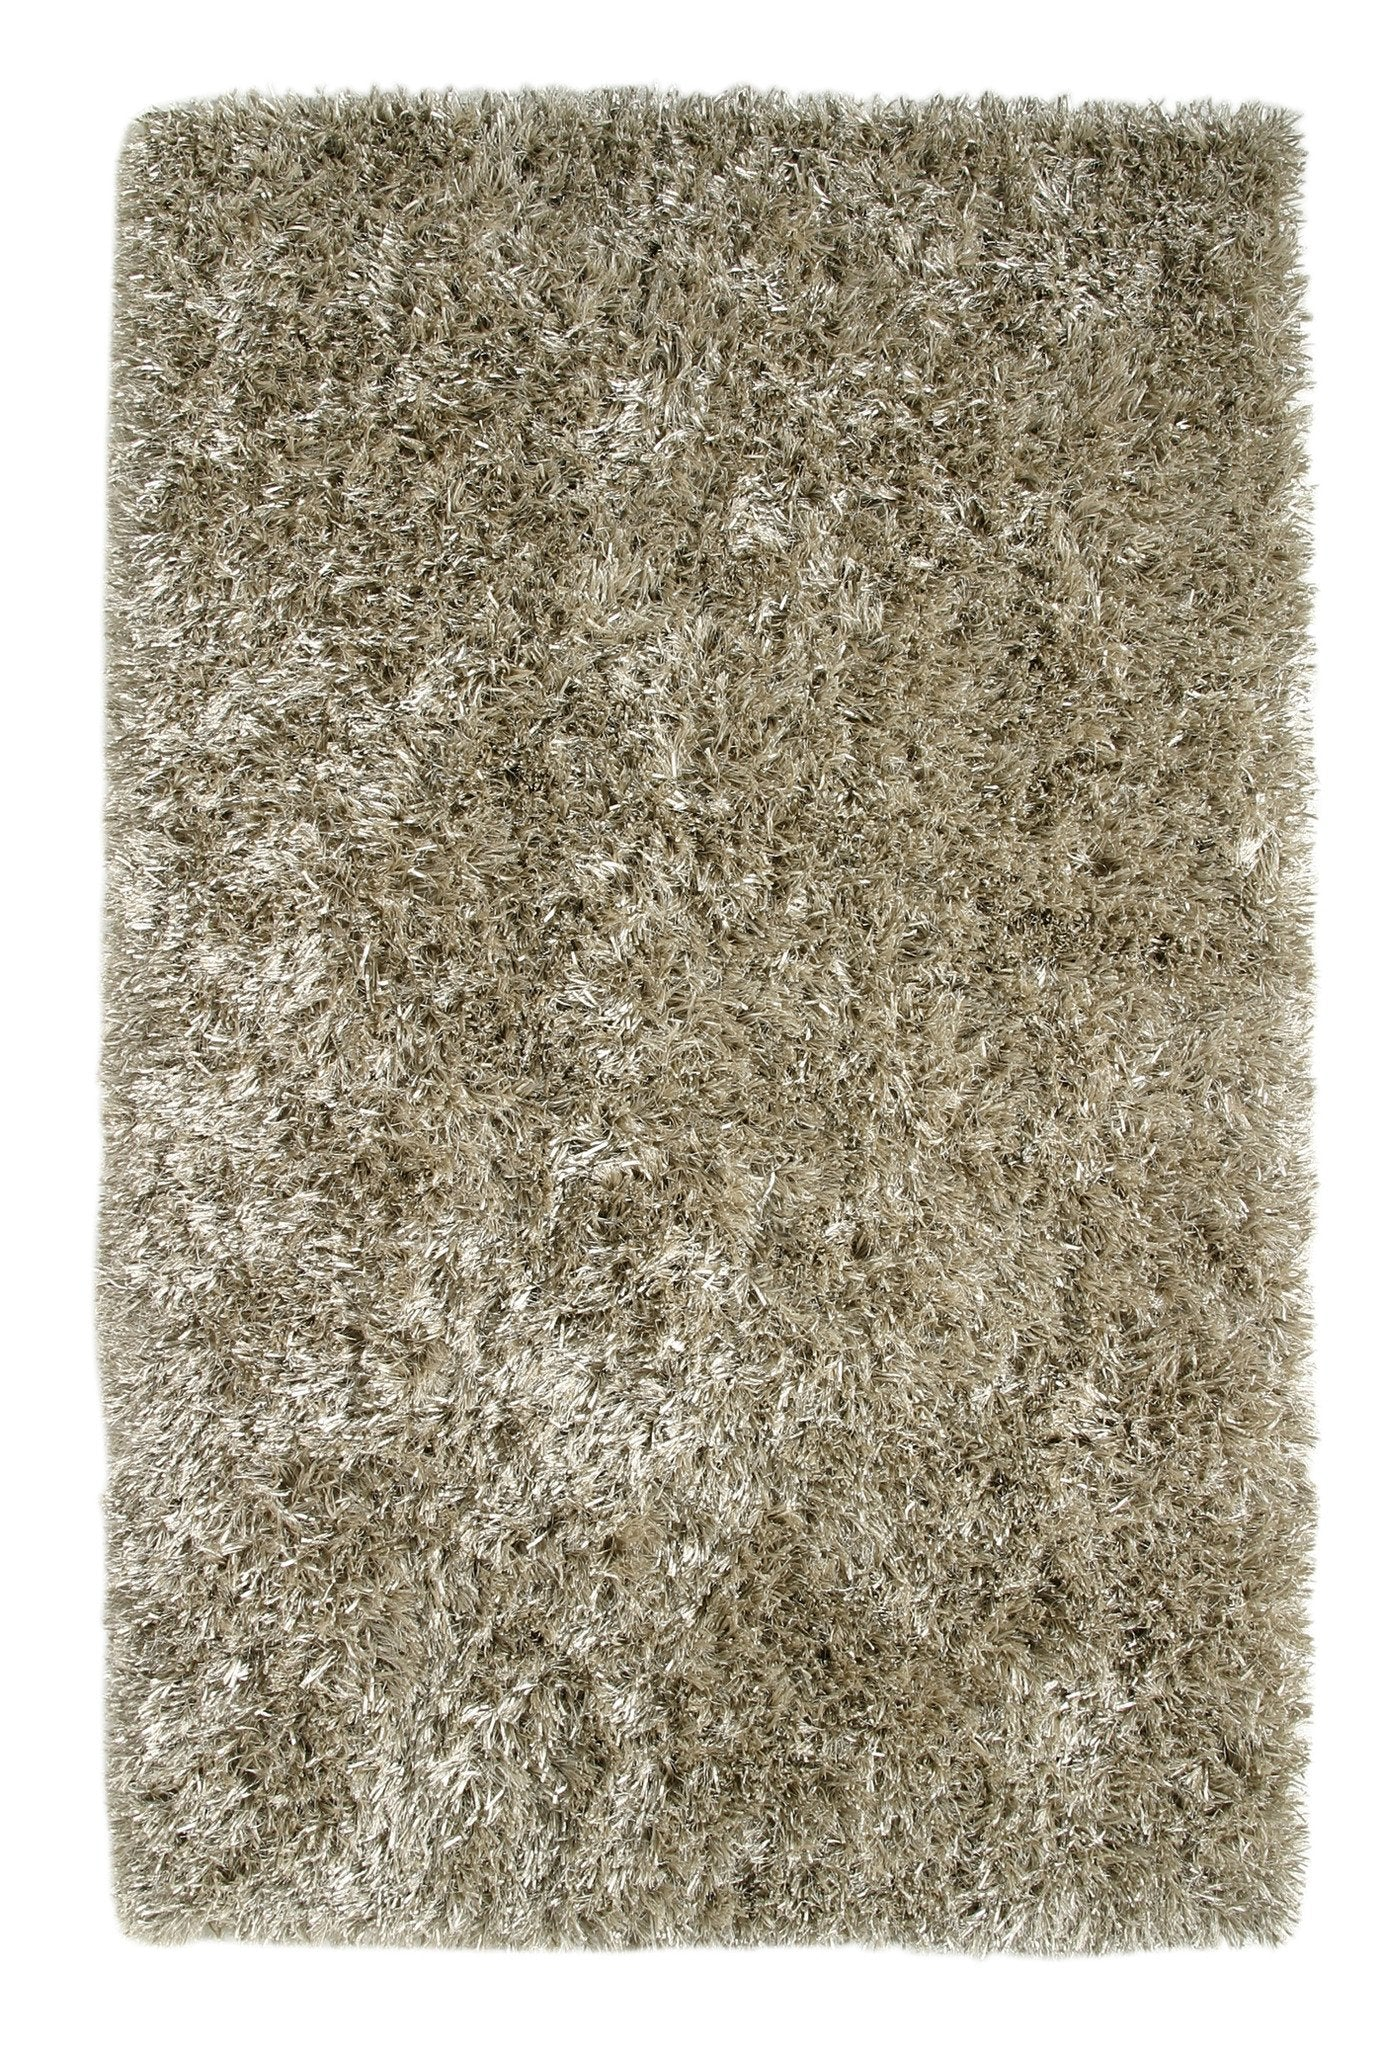 Dynamic Rugs Romance Champagne N/A Rectangle Area Rug